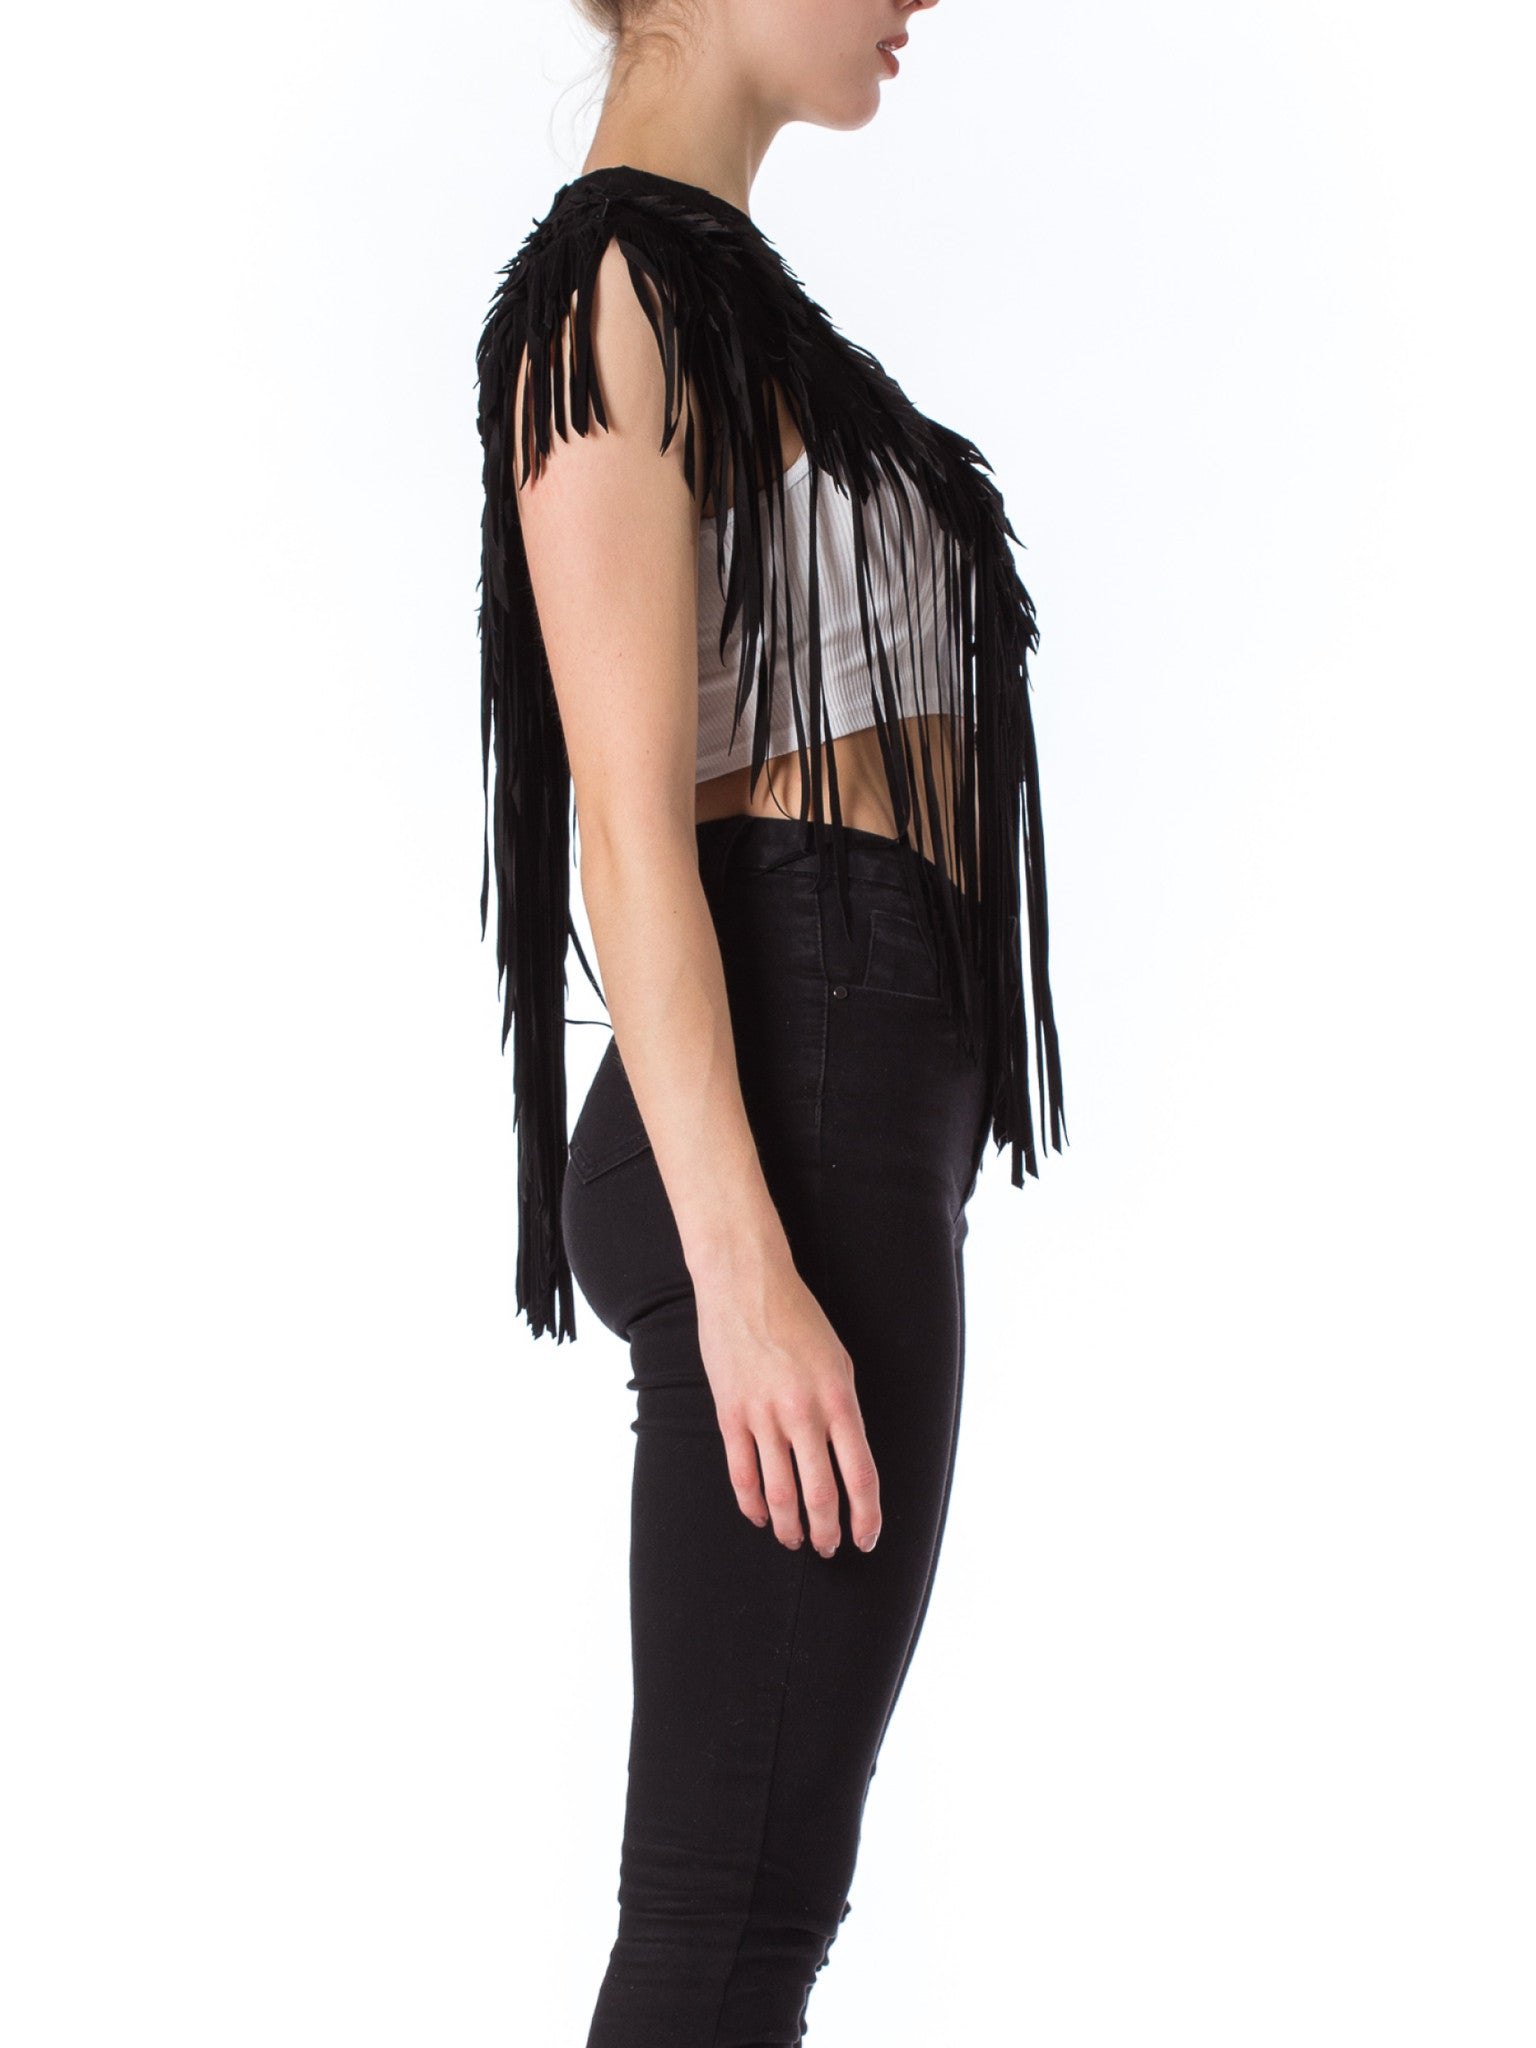 MORPHEW COLLECTION Raven Black Suede Feather Leather Cape